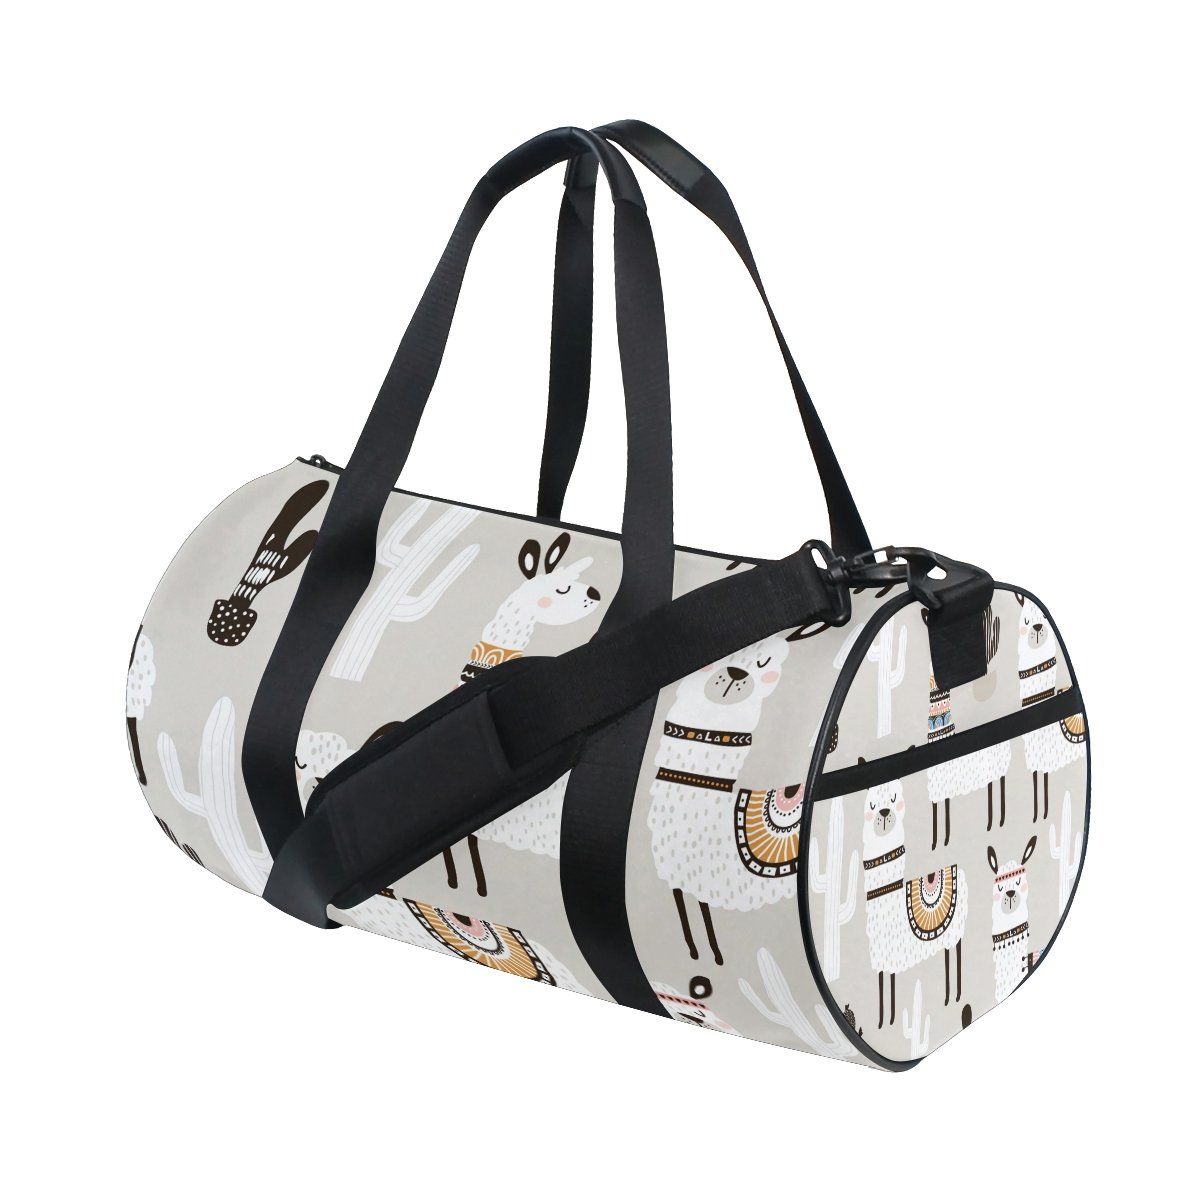 White Llama Travel Duffle Bag Sports Luggage with Backpack Tote Gym Bag for Man and Women